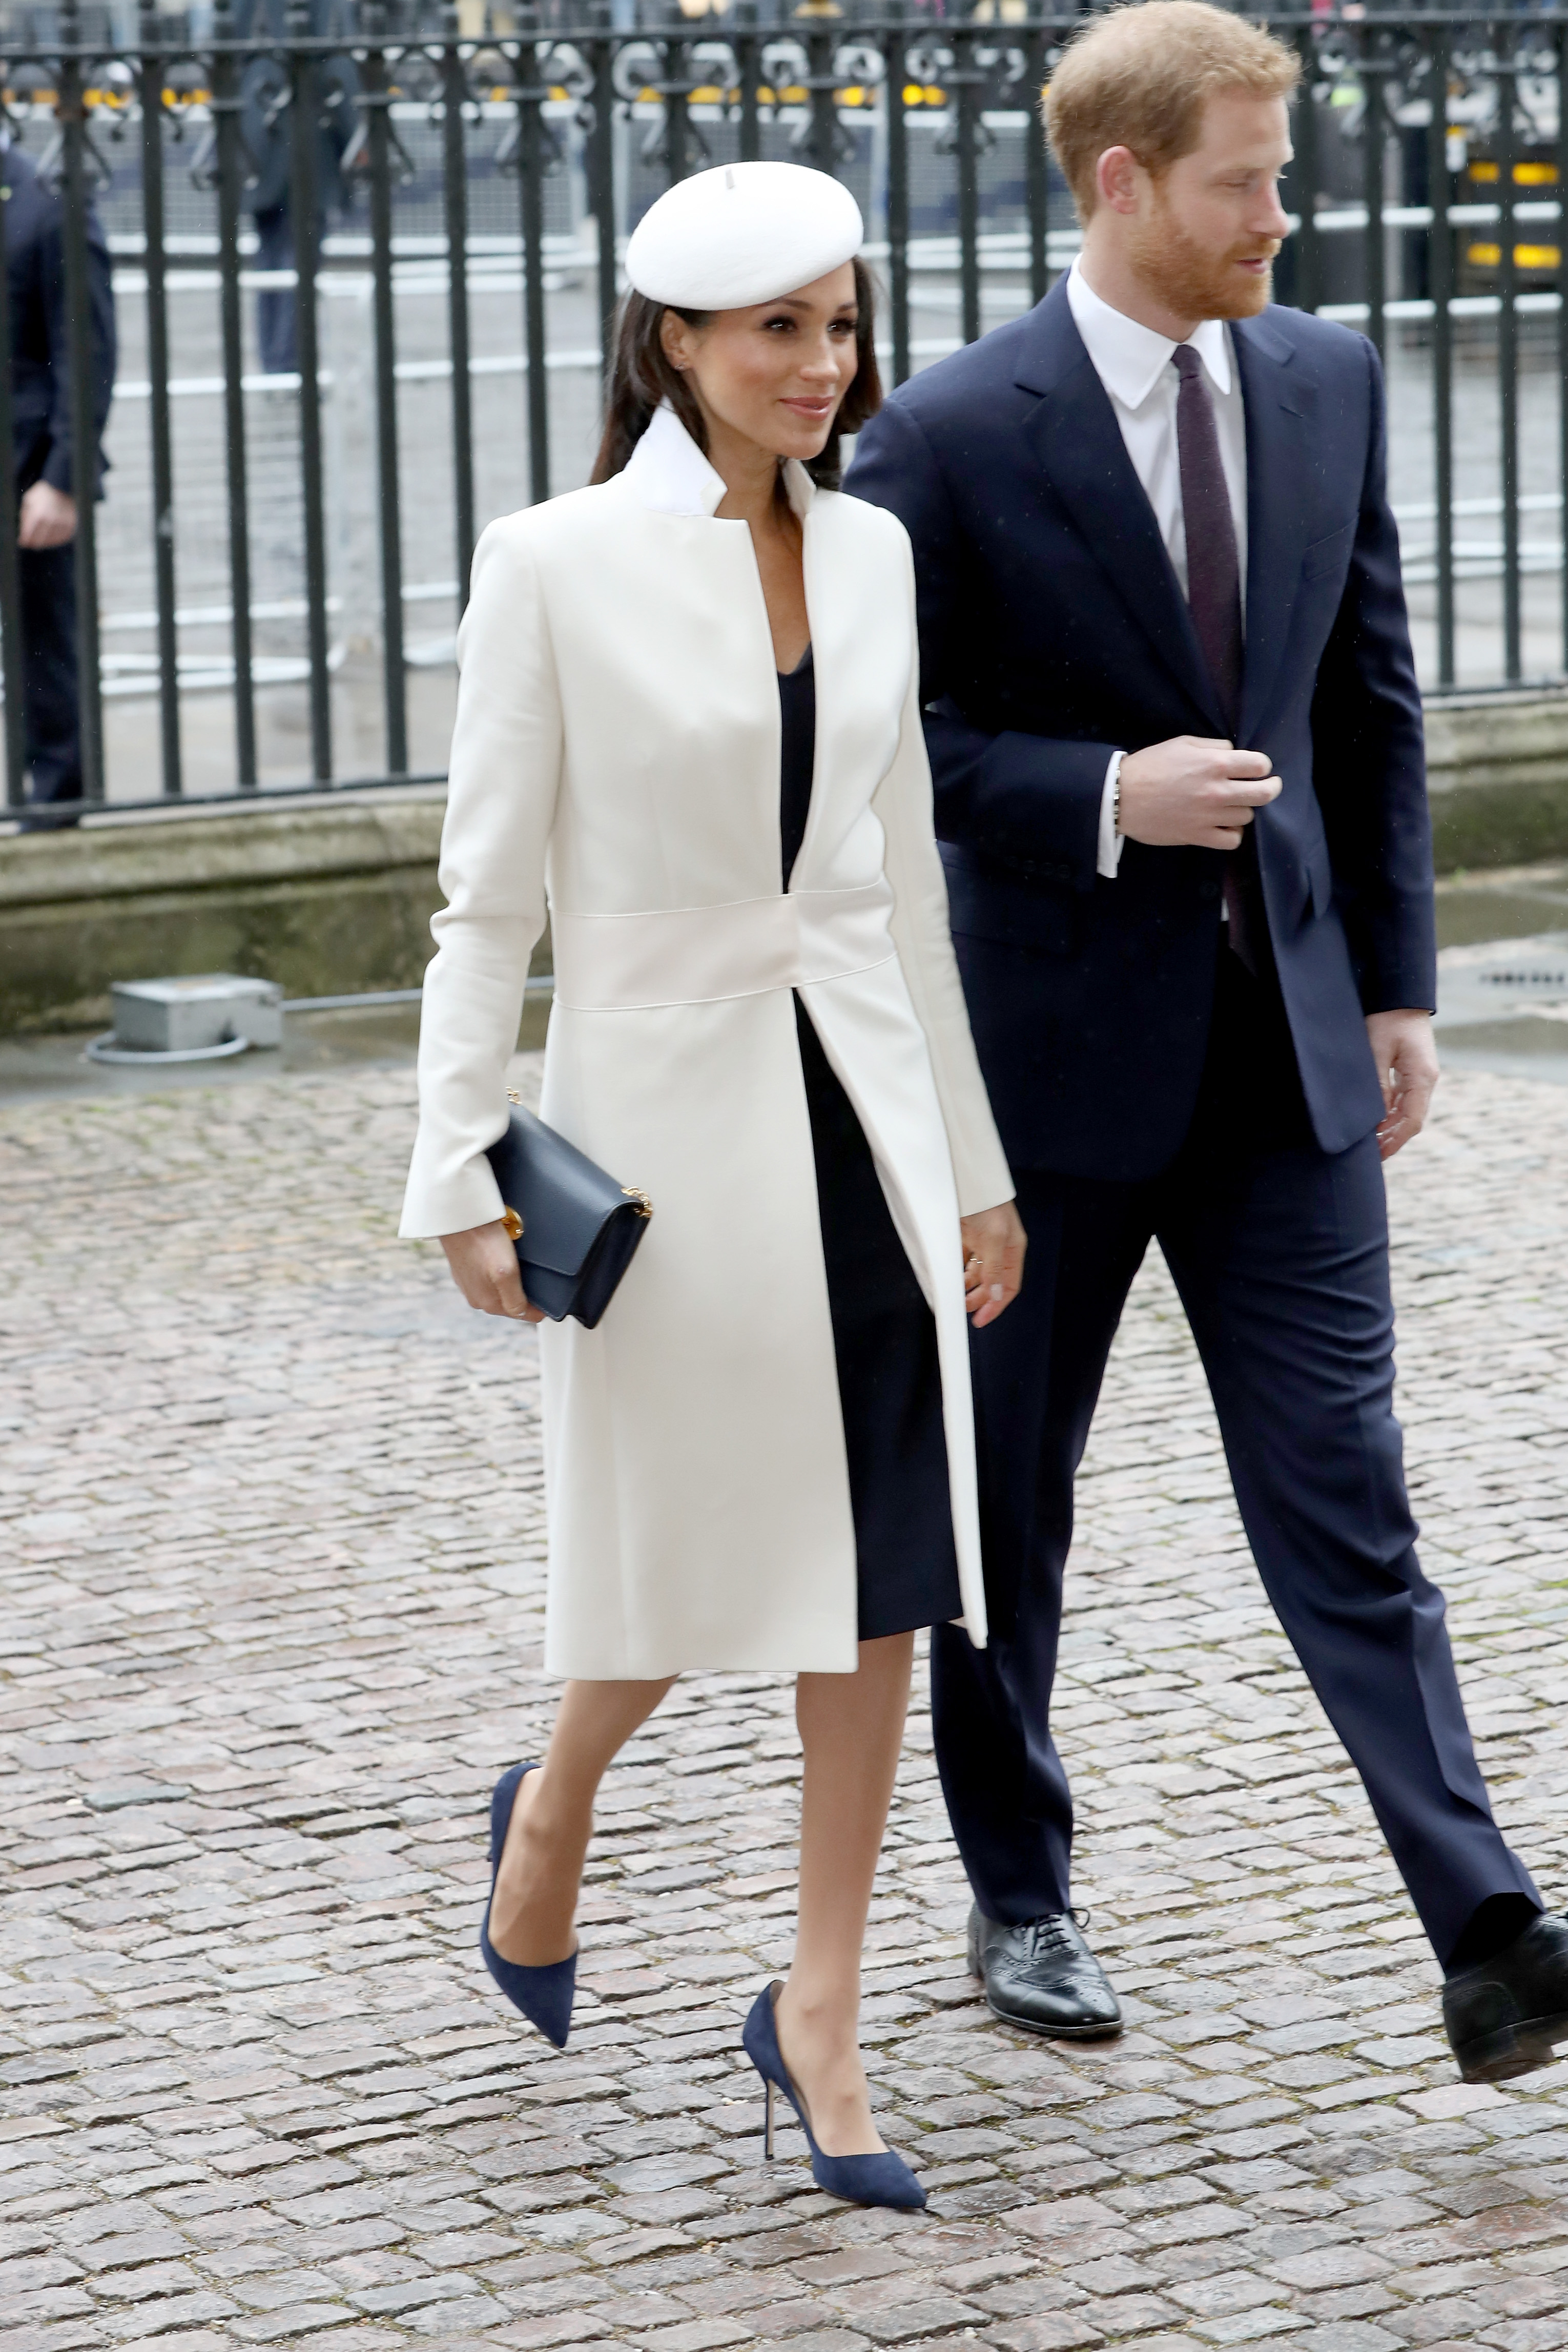 (L-R) Meghan Markle and Prince Harry attend the 2018 Commonwealth Day service at Westminster Abbey on March 12, 2018 in London, England.